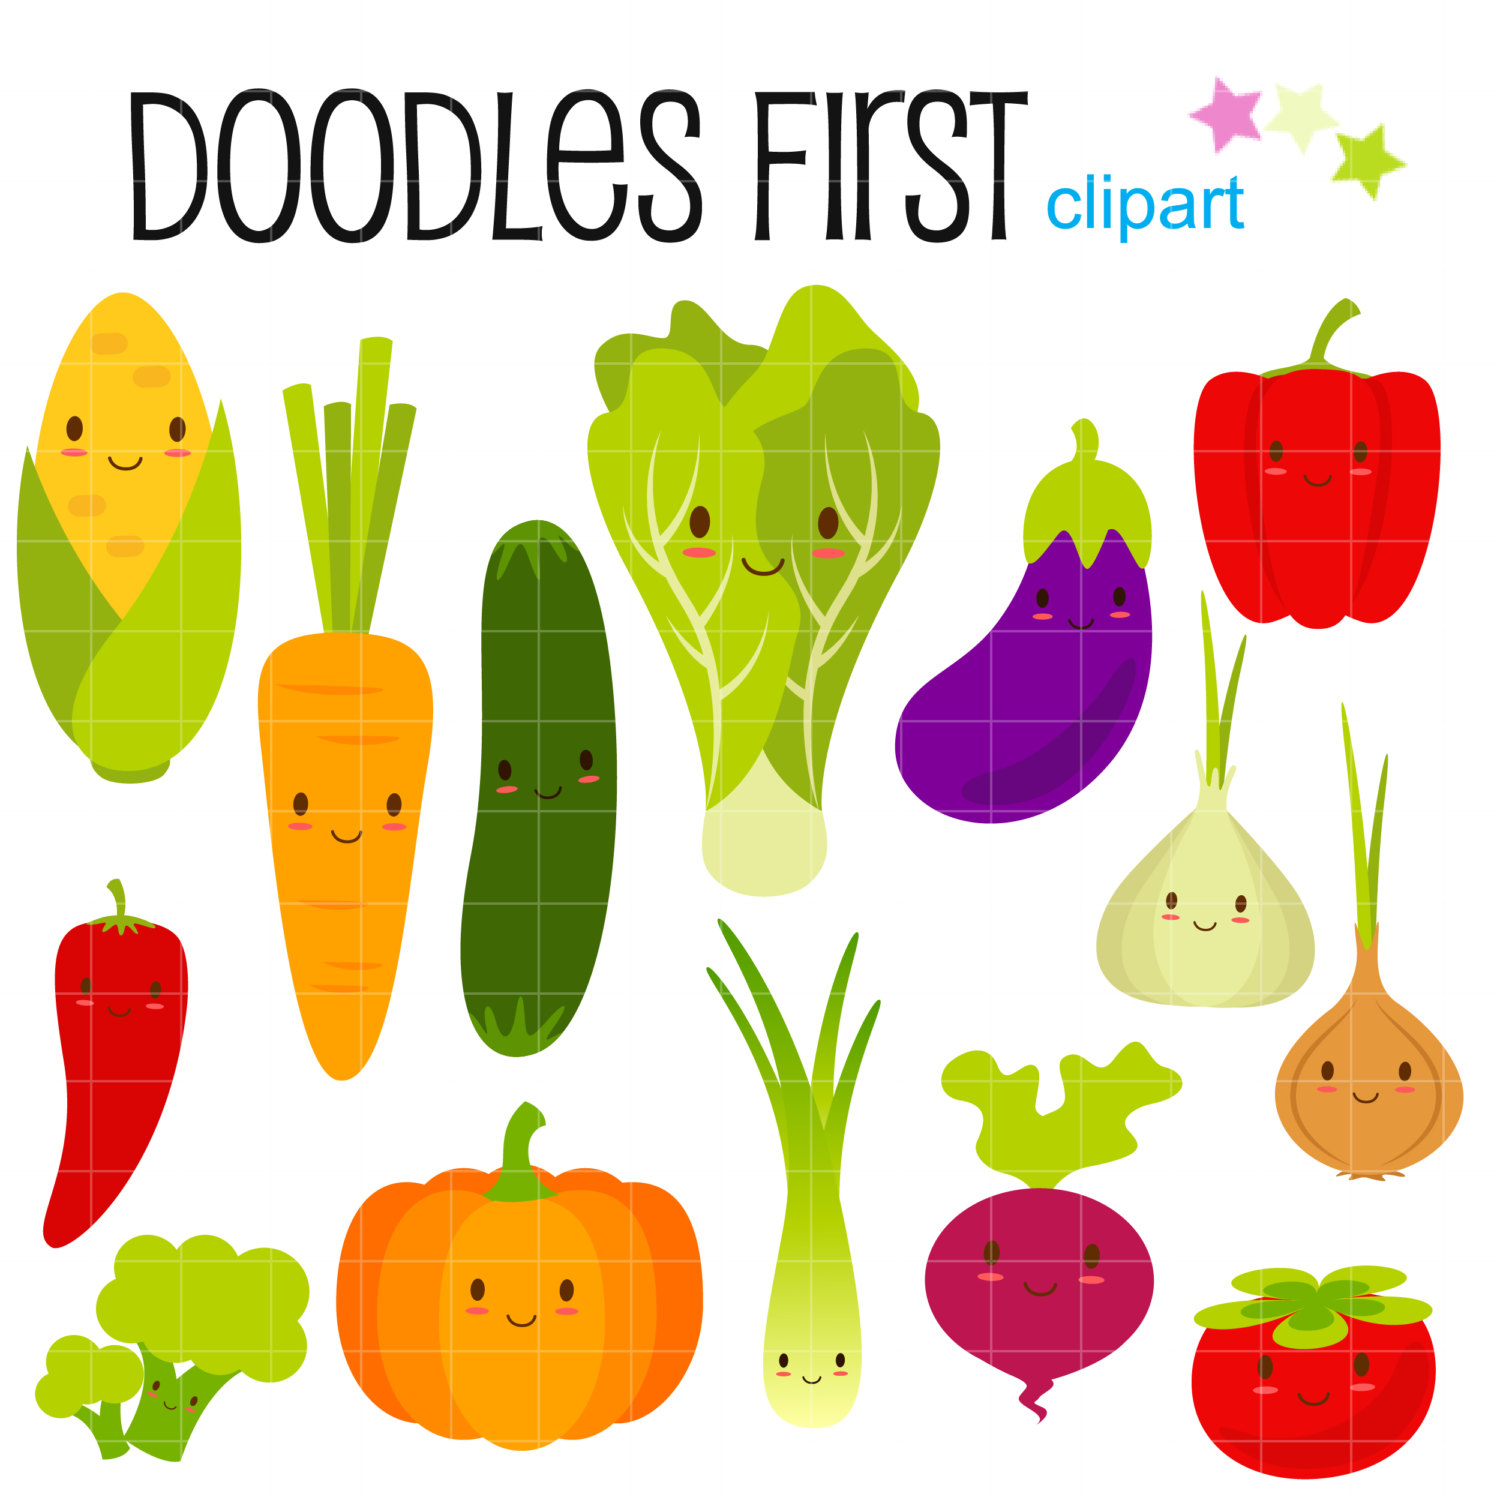 Fruits and vegetables clipart .-Fruits and vegetables clipart .-11